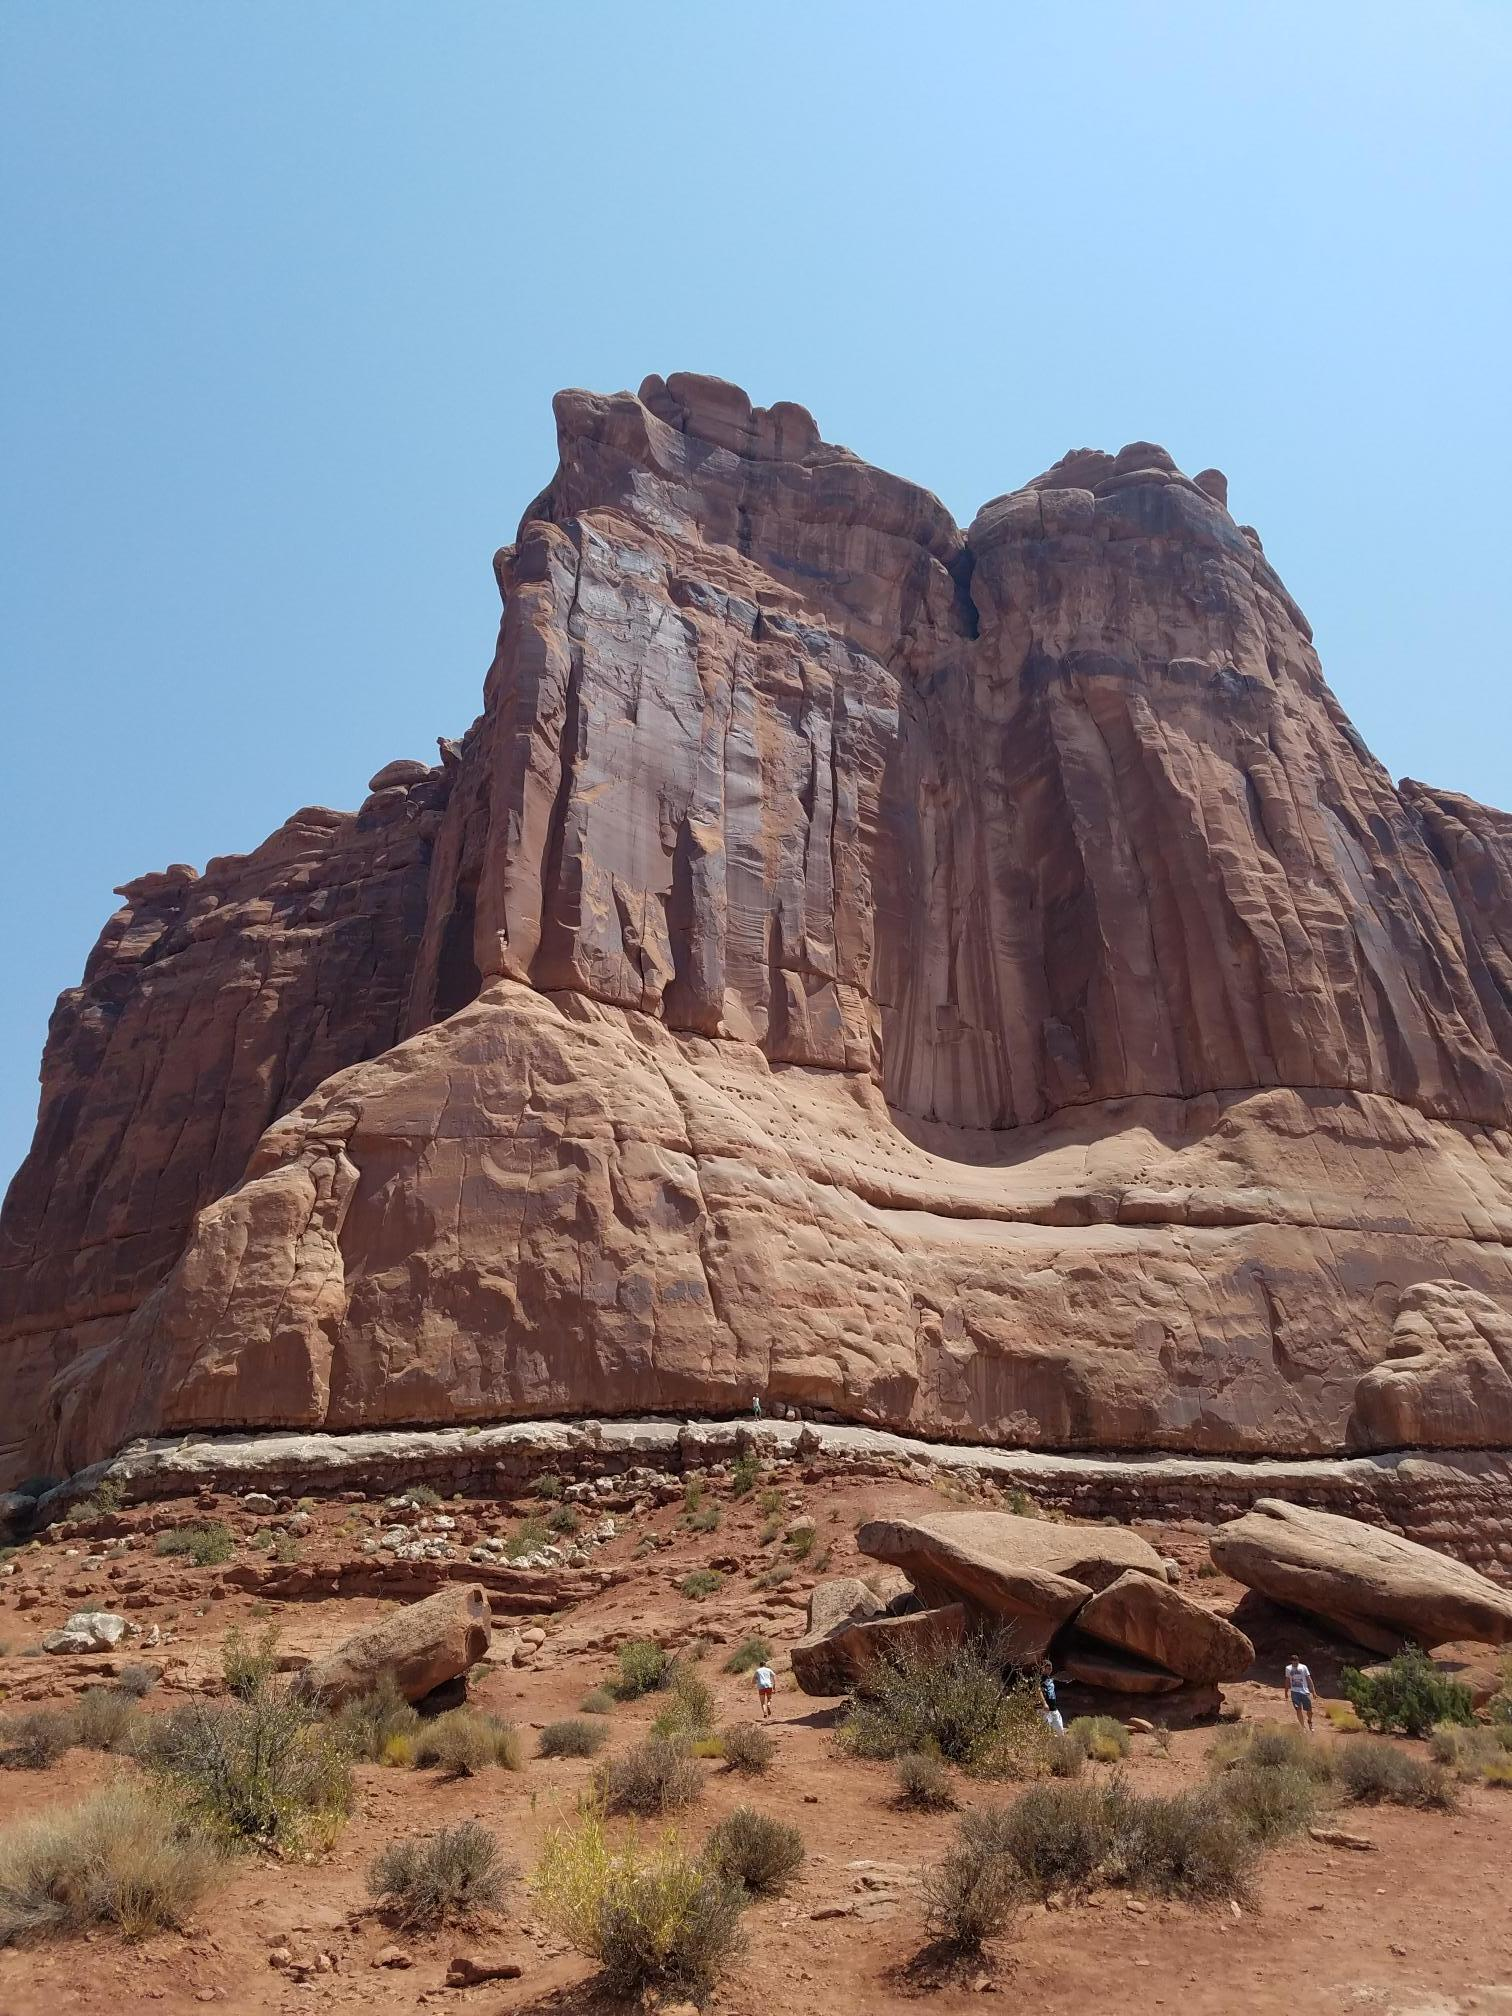 Arches formations, look how tiny the people are!